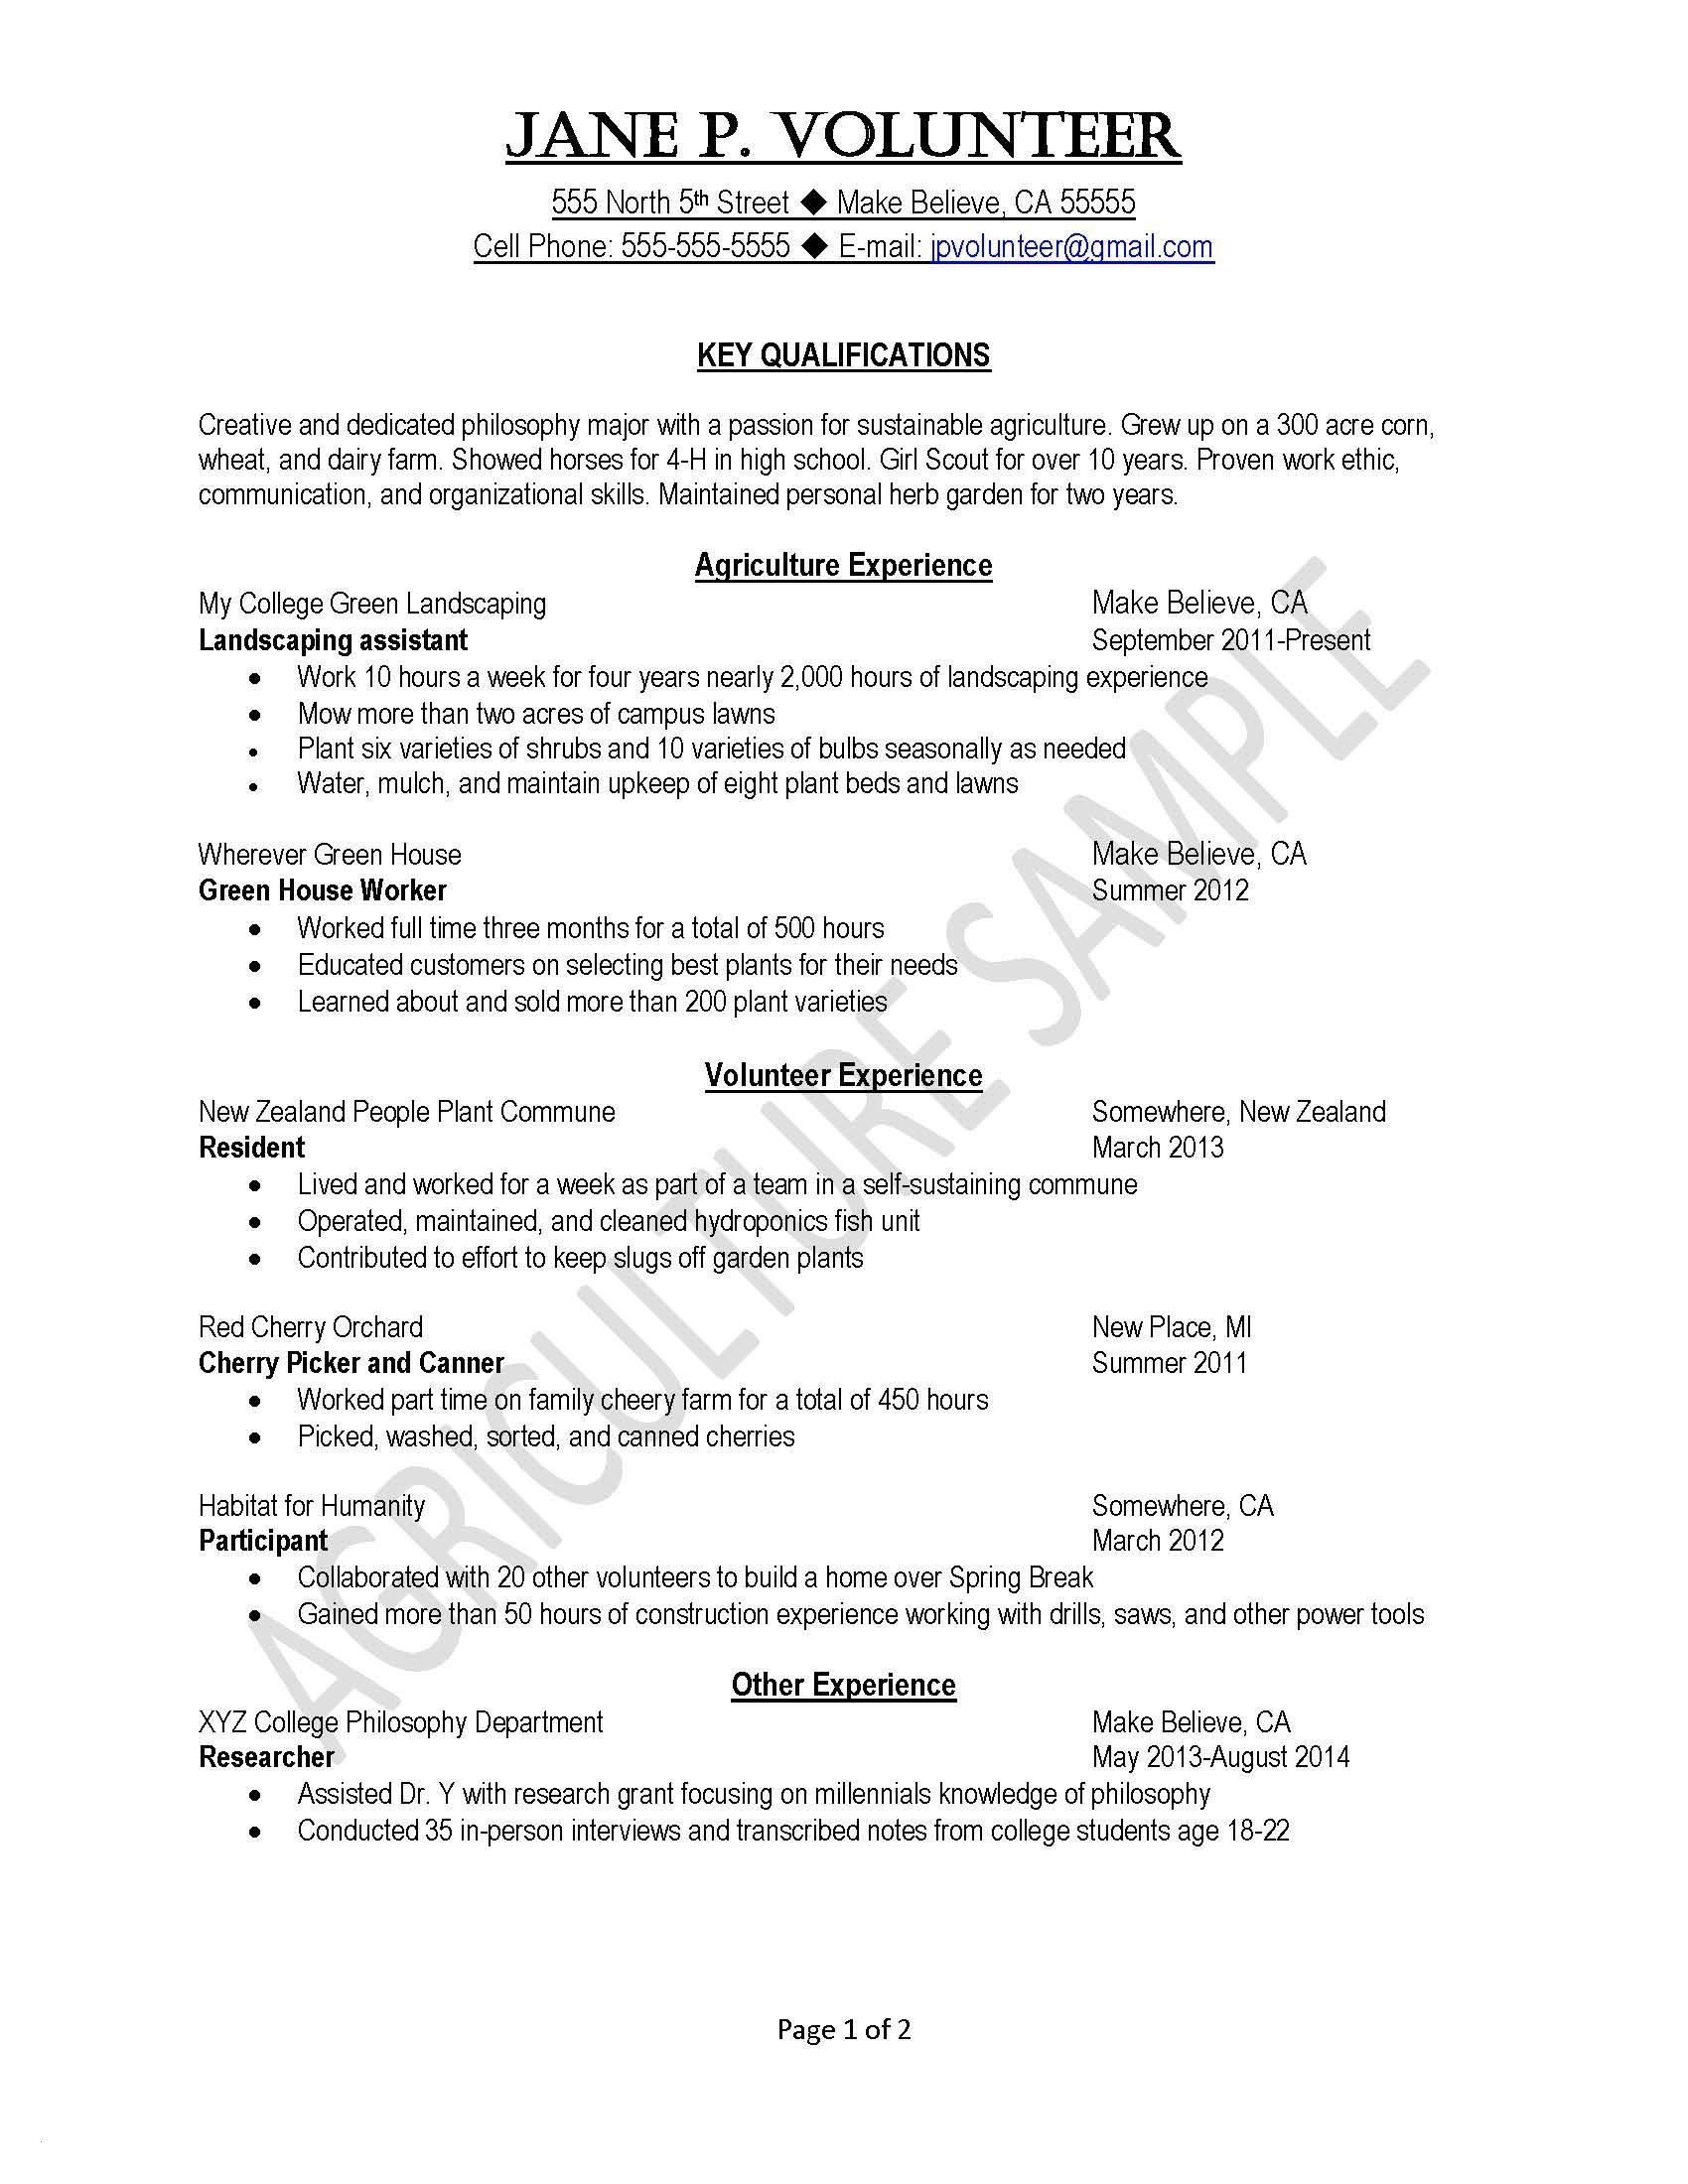 Sample Resumes for College Students - Resume Templates for College Applications Awesome Awesome Sample